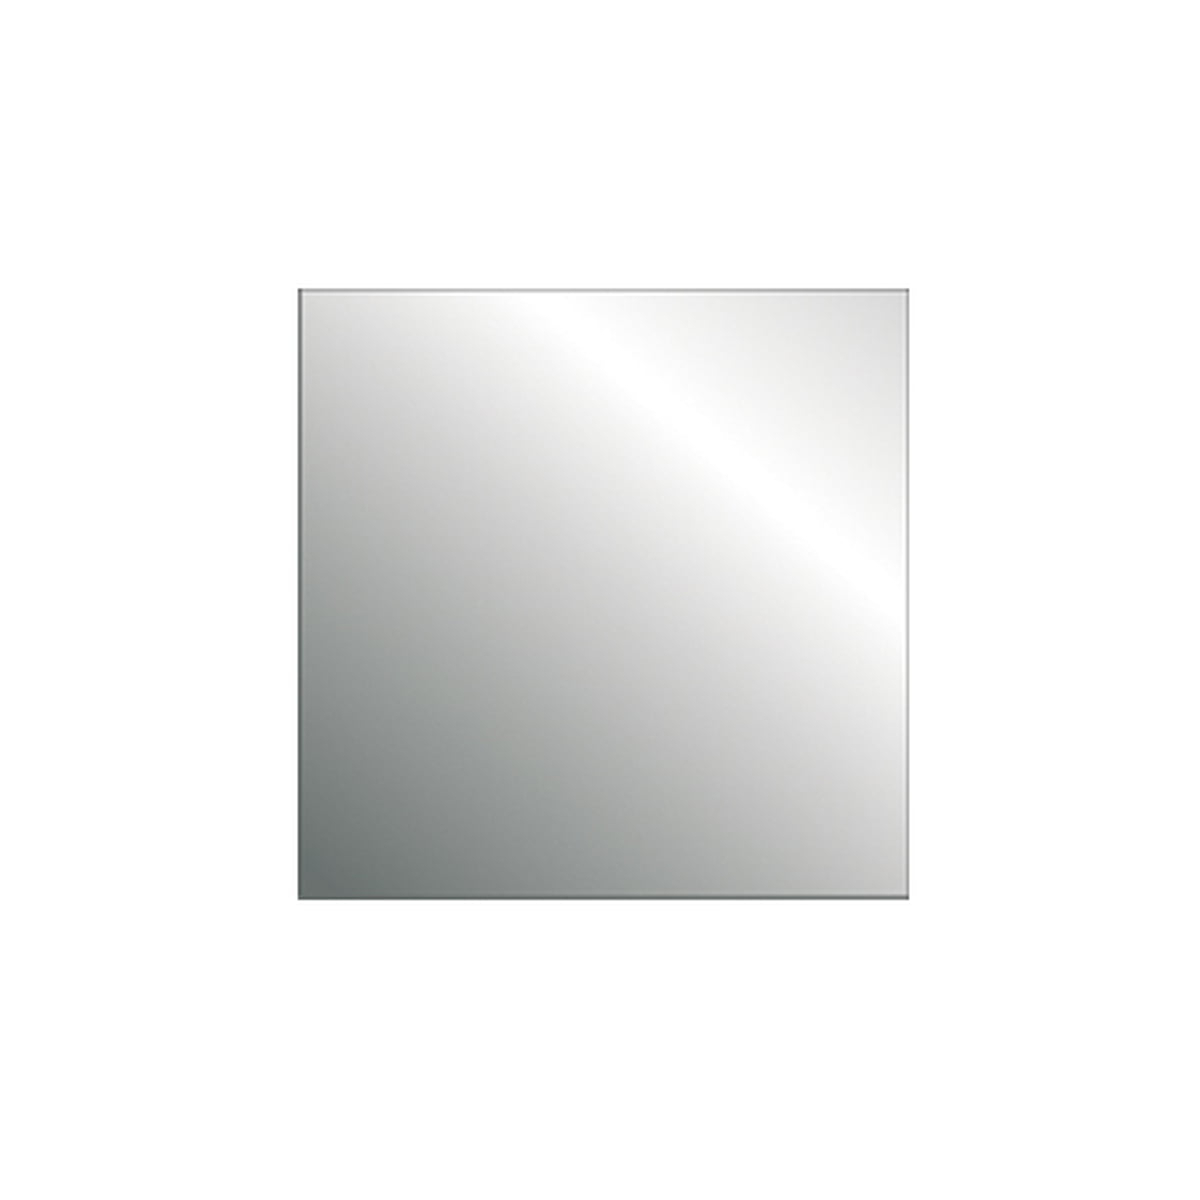 Driade – No Frame I, Square Wall Mirror Regarding Latest Square Wall Mirrors (View 1 of 20)